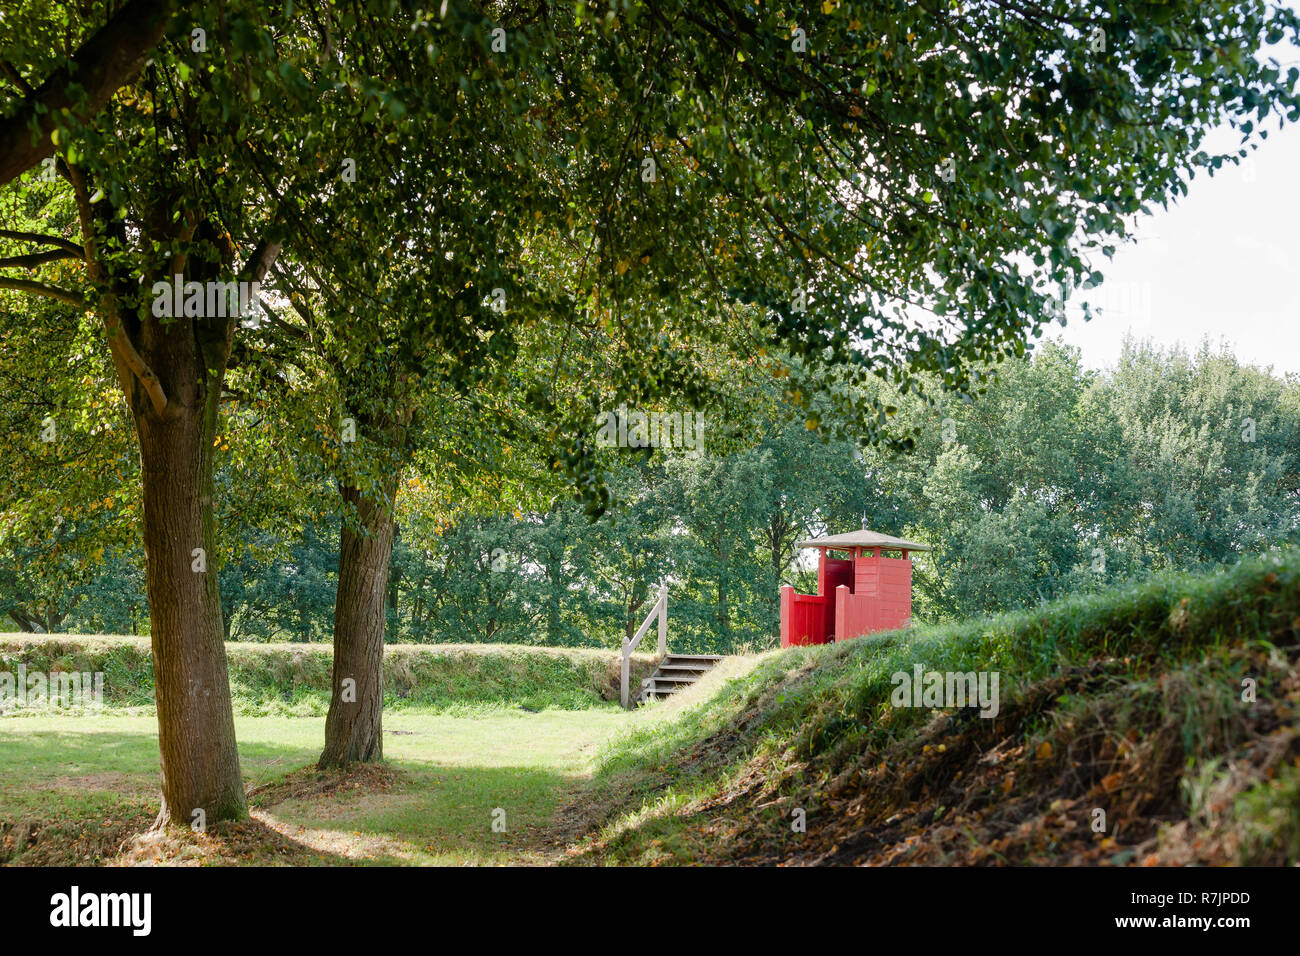 Observation post on a defense wall of historic fortress town of Bourtange, Groningen in Netherlands - Stock Image